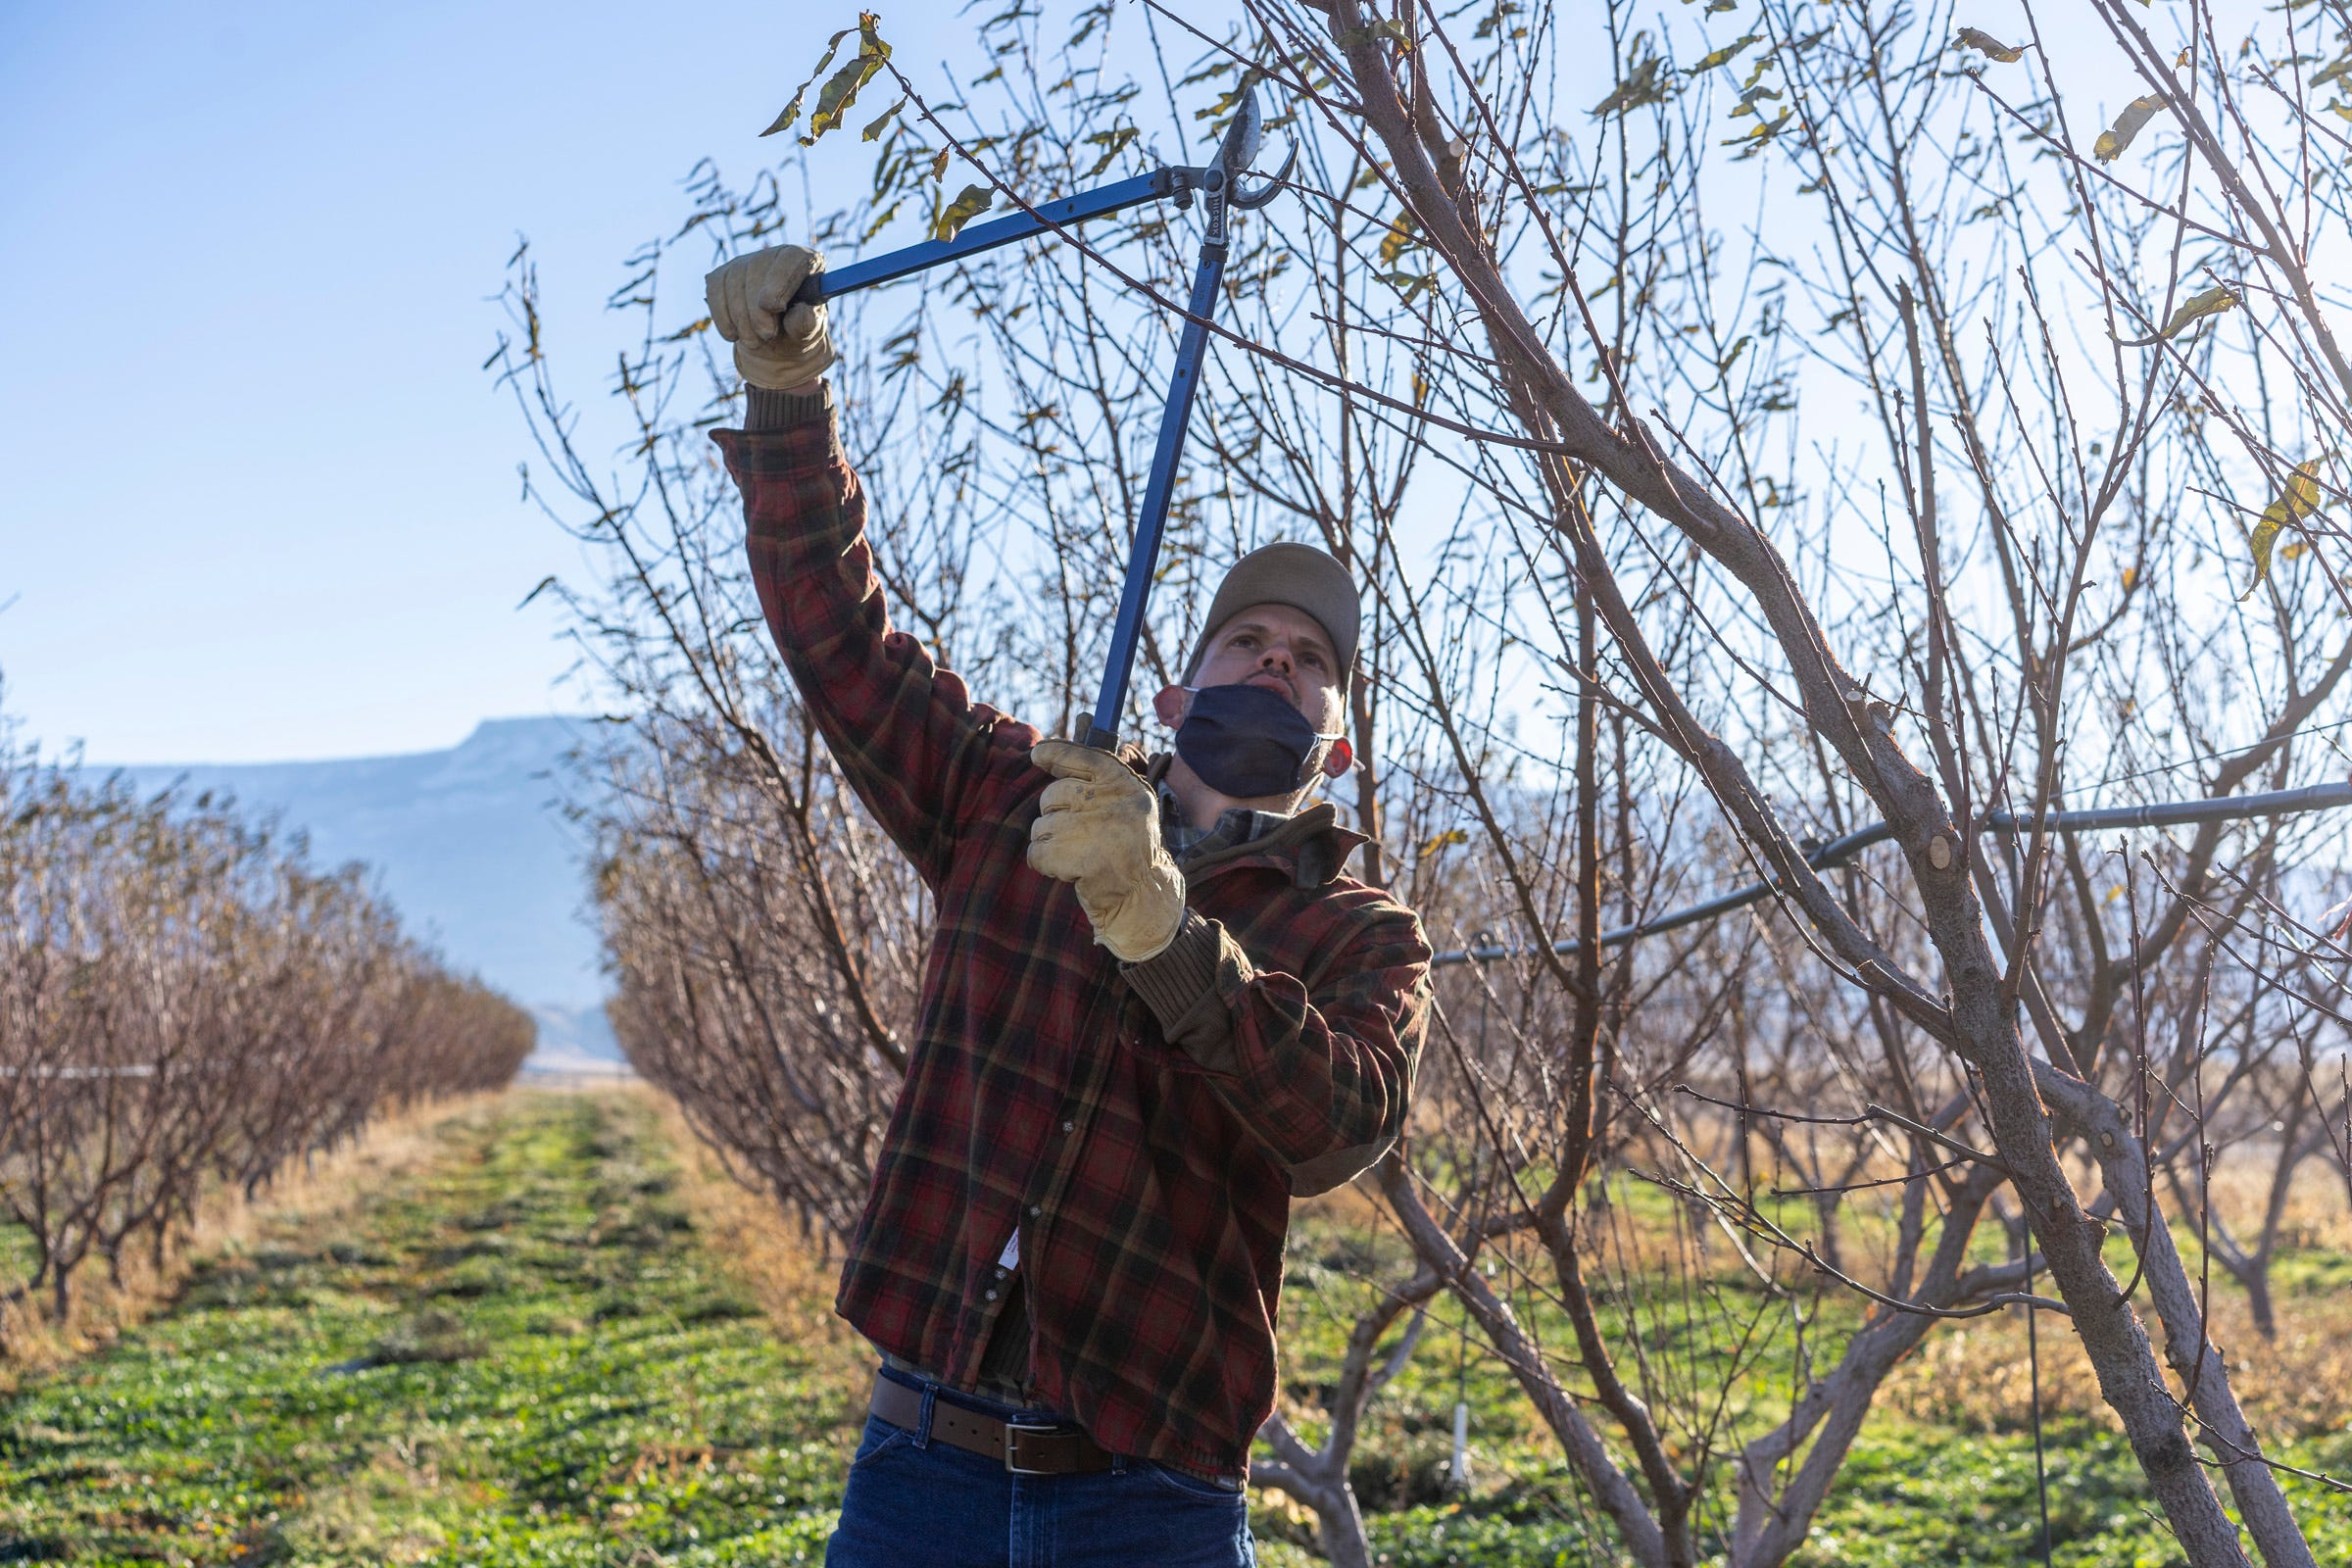 Luke Gingerich snips at a peach tree with pruning shears at his organic orchard on East Orchard Mesa in Palisade, Colorado. Gingerich has a high-efficiency sprinkler system on his farm. During the extreme heat over the past year, he said he needed to irrigate more to keep the trees healthy.